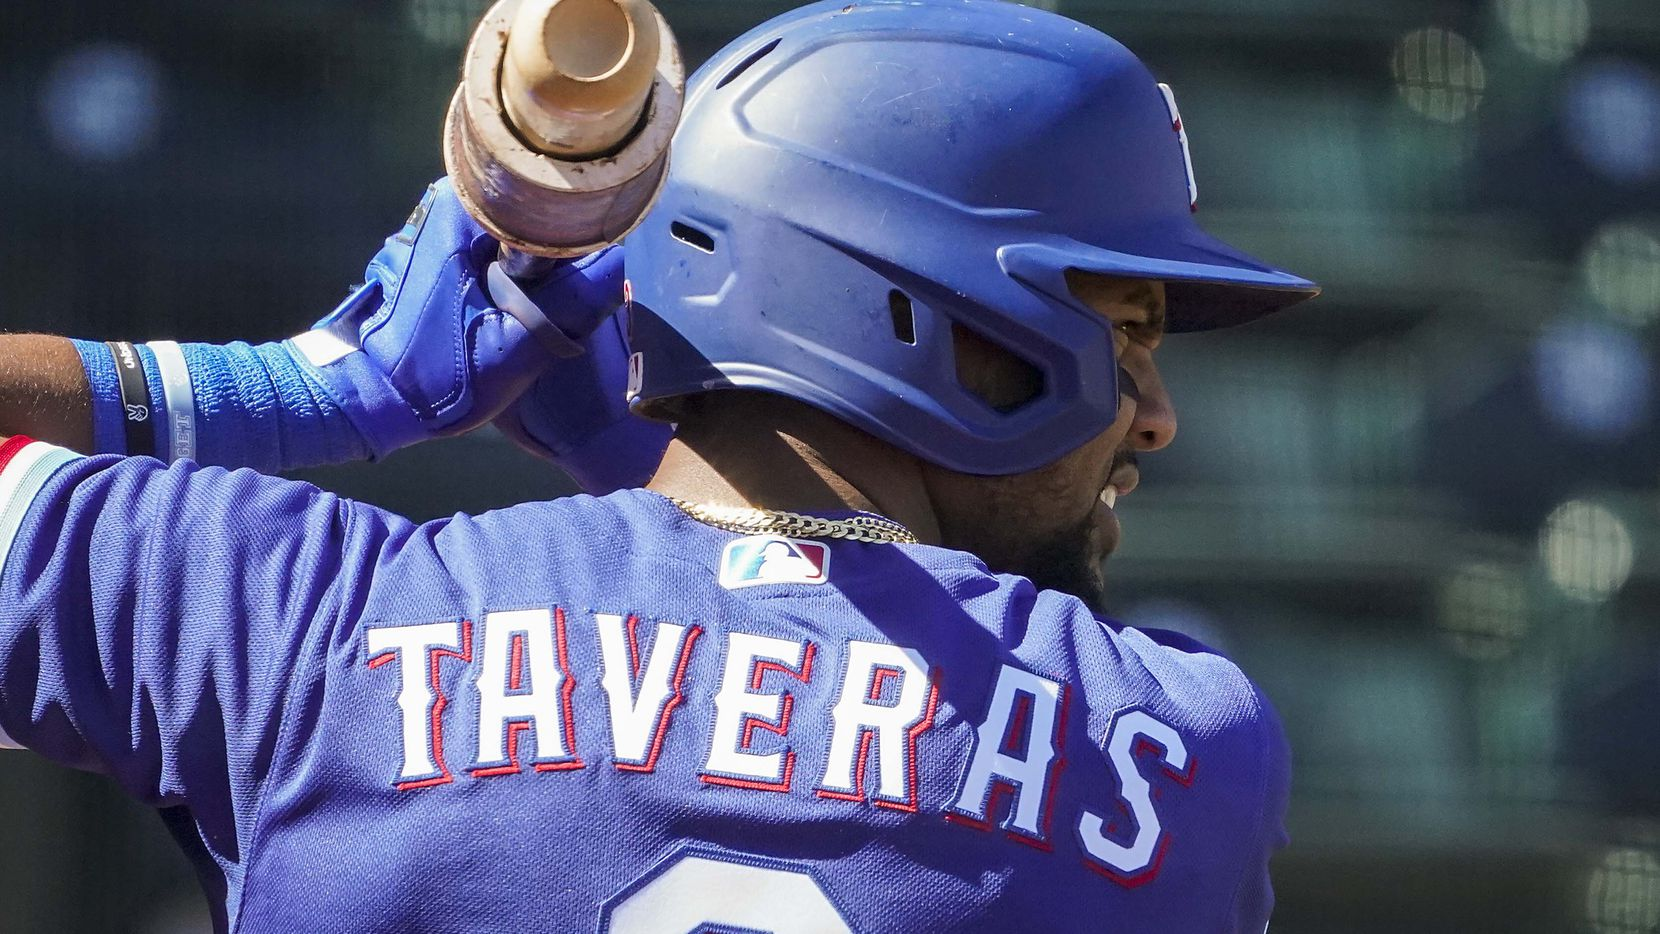 Texas Rangers outfielder Leody Taveras takes a practice swing in the on deck circle before batting during the first inning of a spring training game against the San Francisco Giants at Surprise Stadium on Monday, March 1, 2021, in Surprise, Ariz.